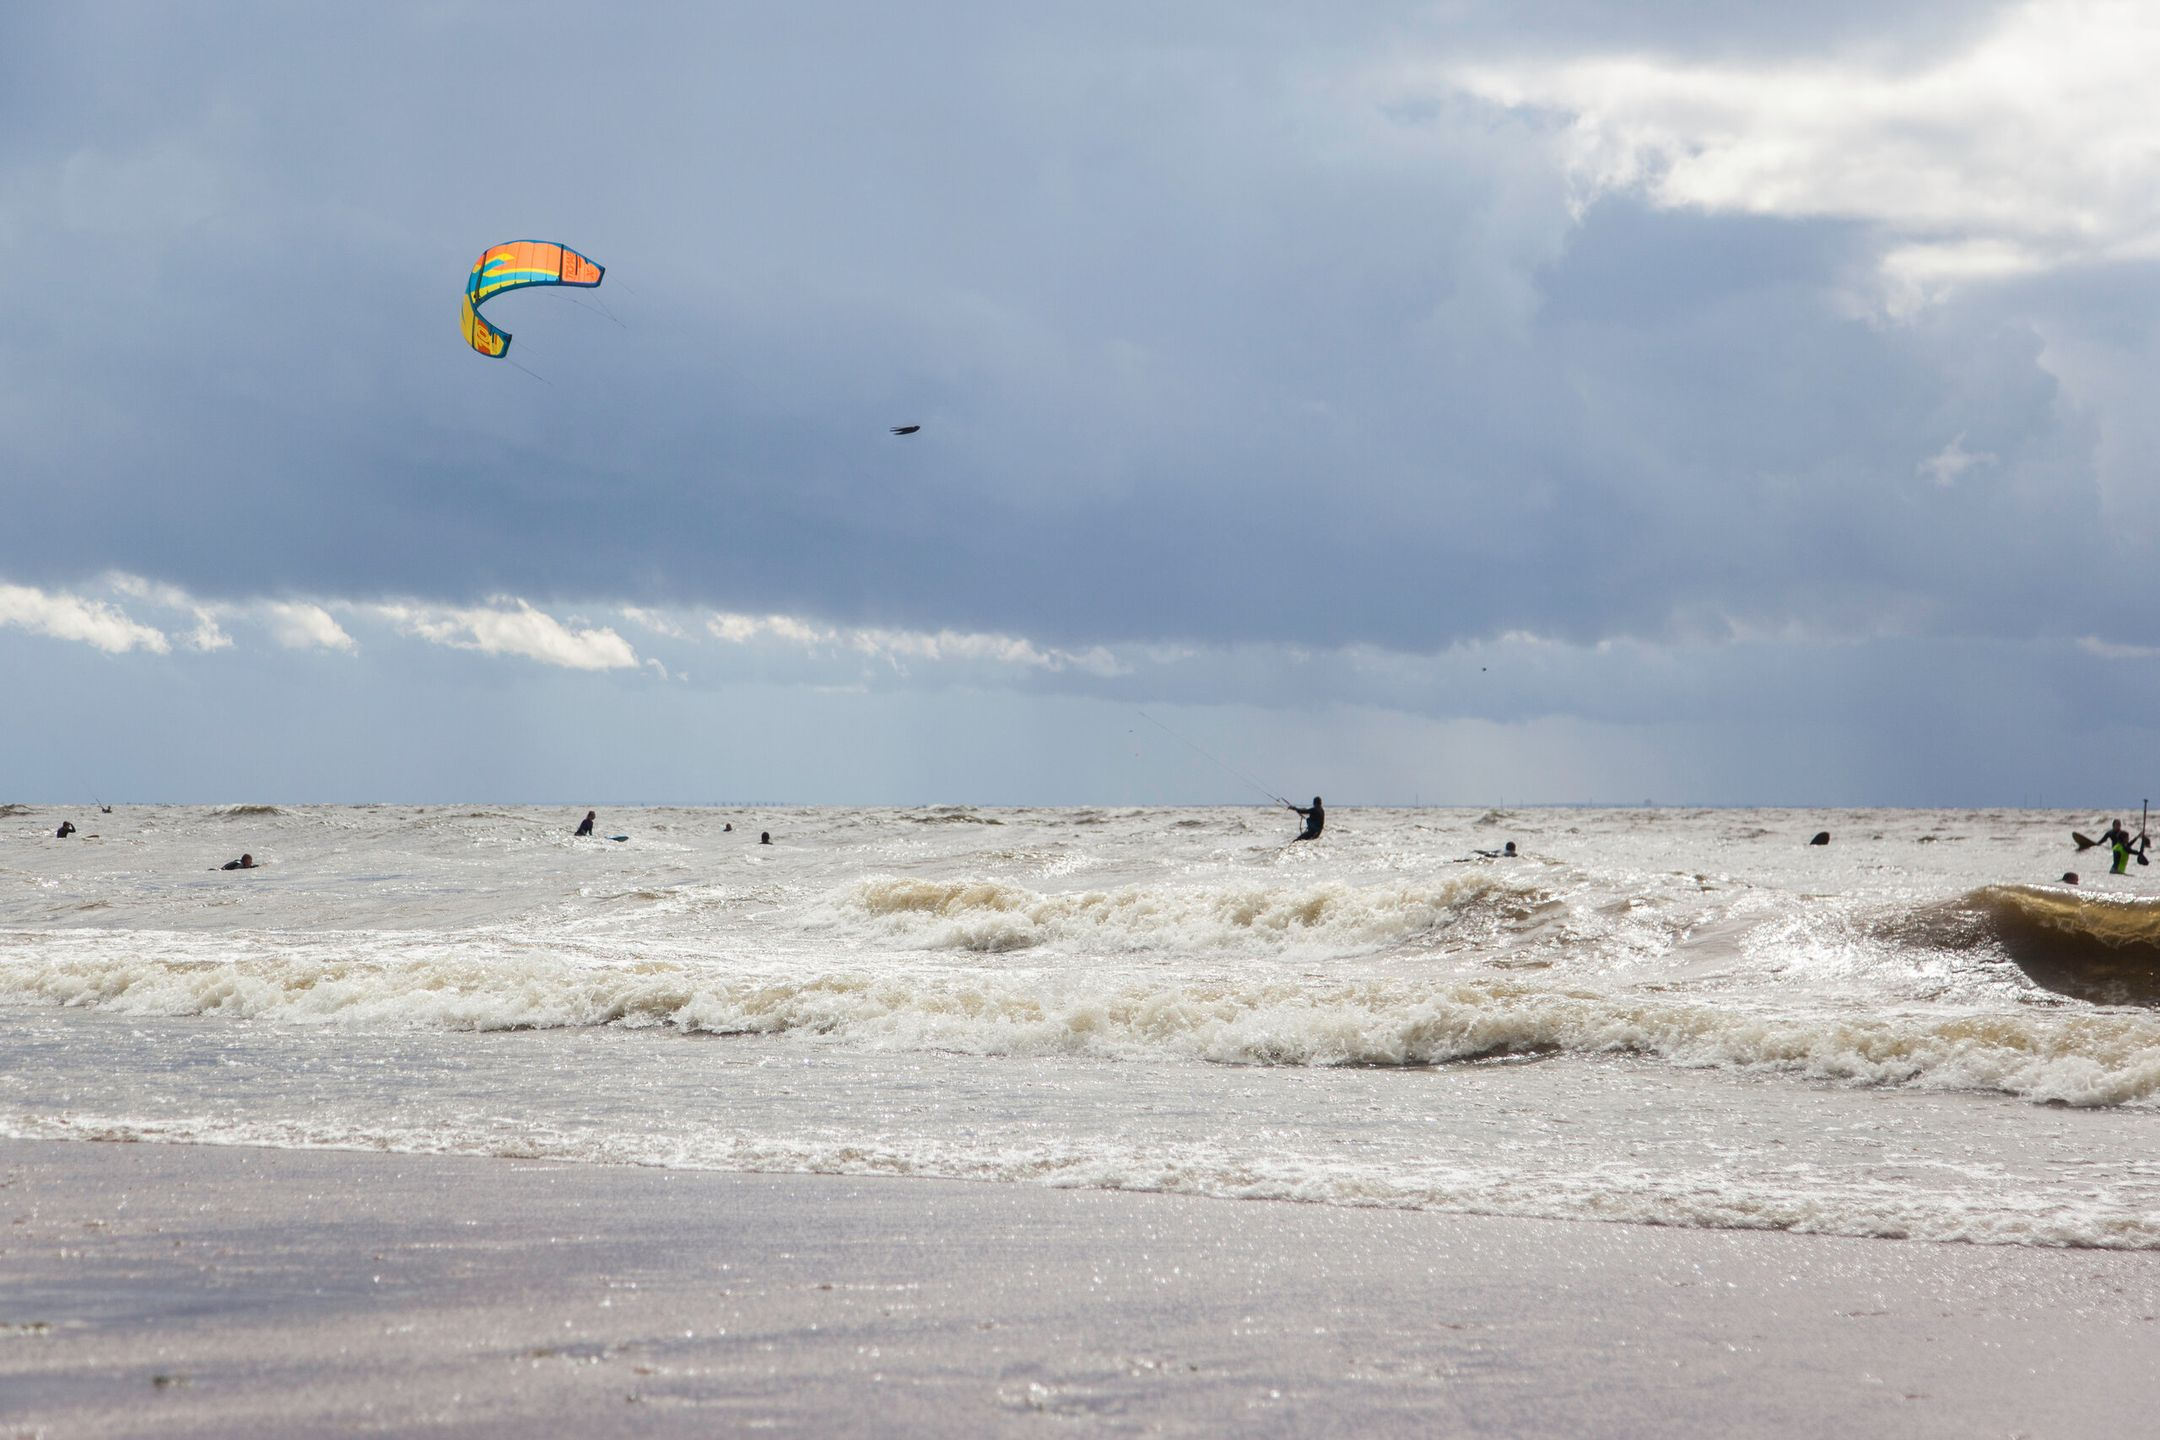 kitesurfing Colombia kitespot Santa Veronica ripatrip travel big